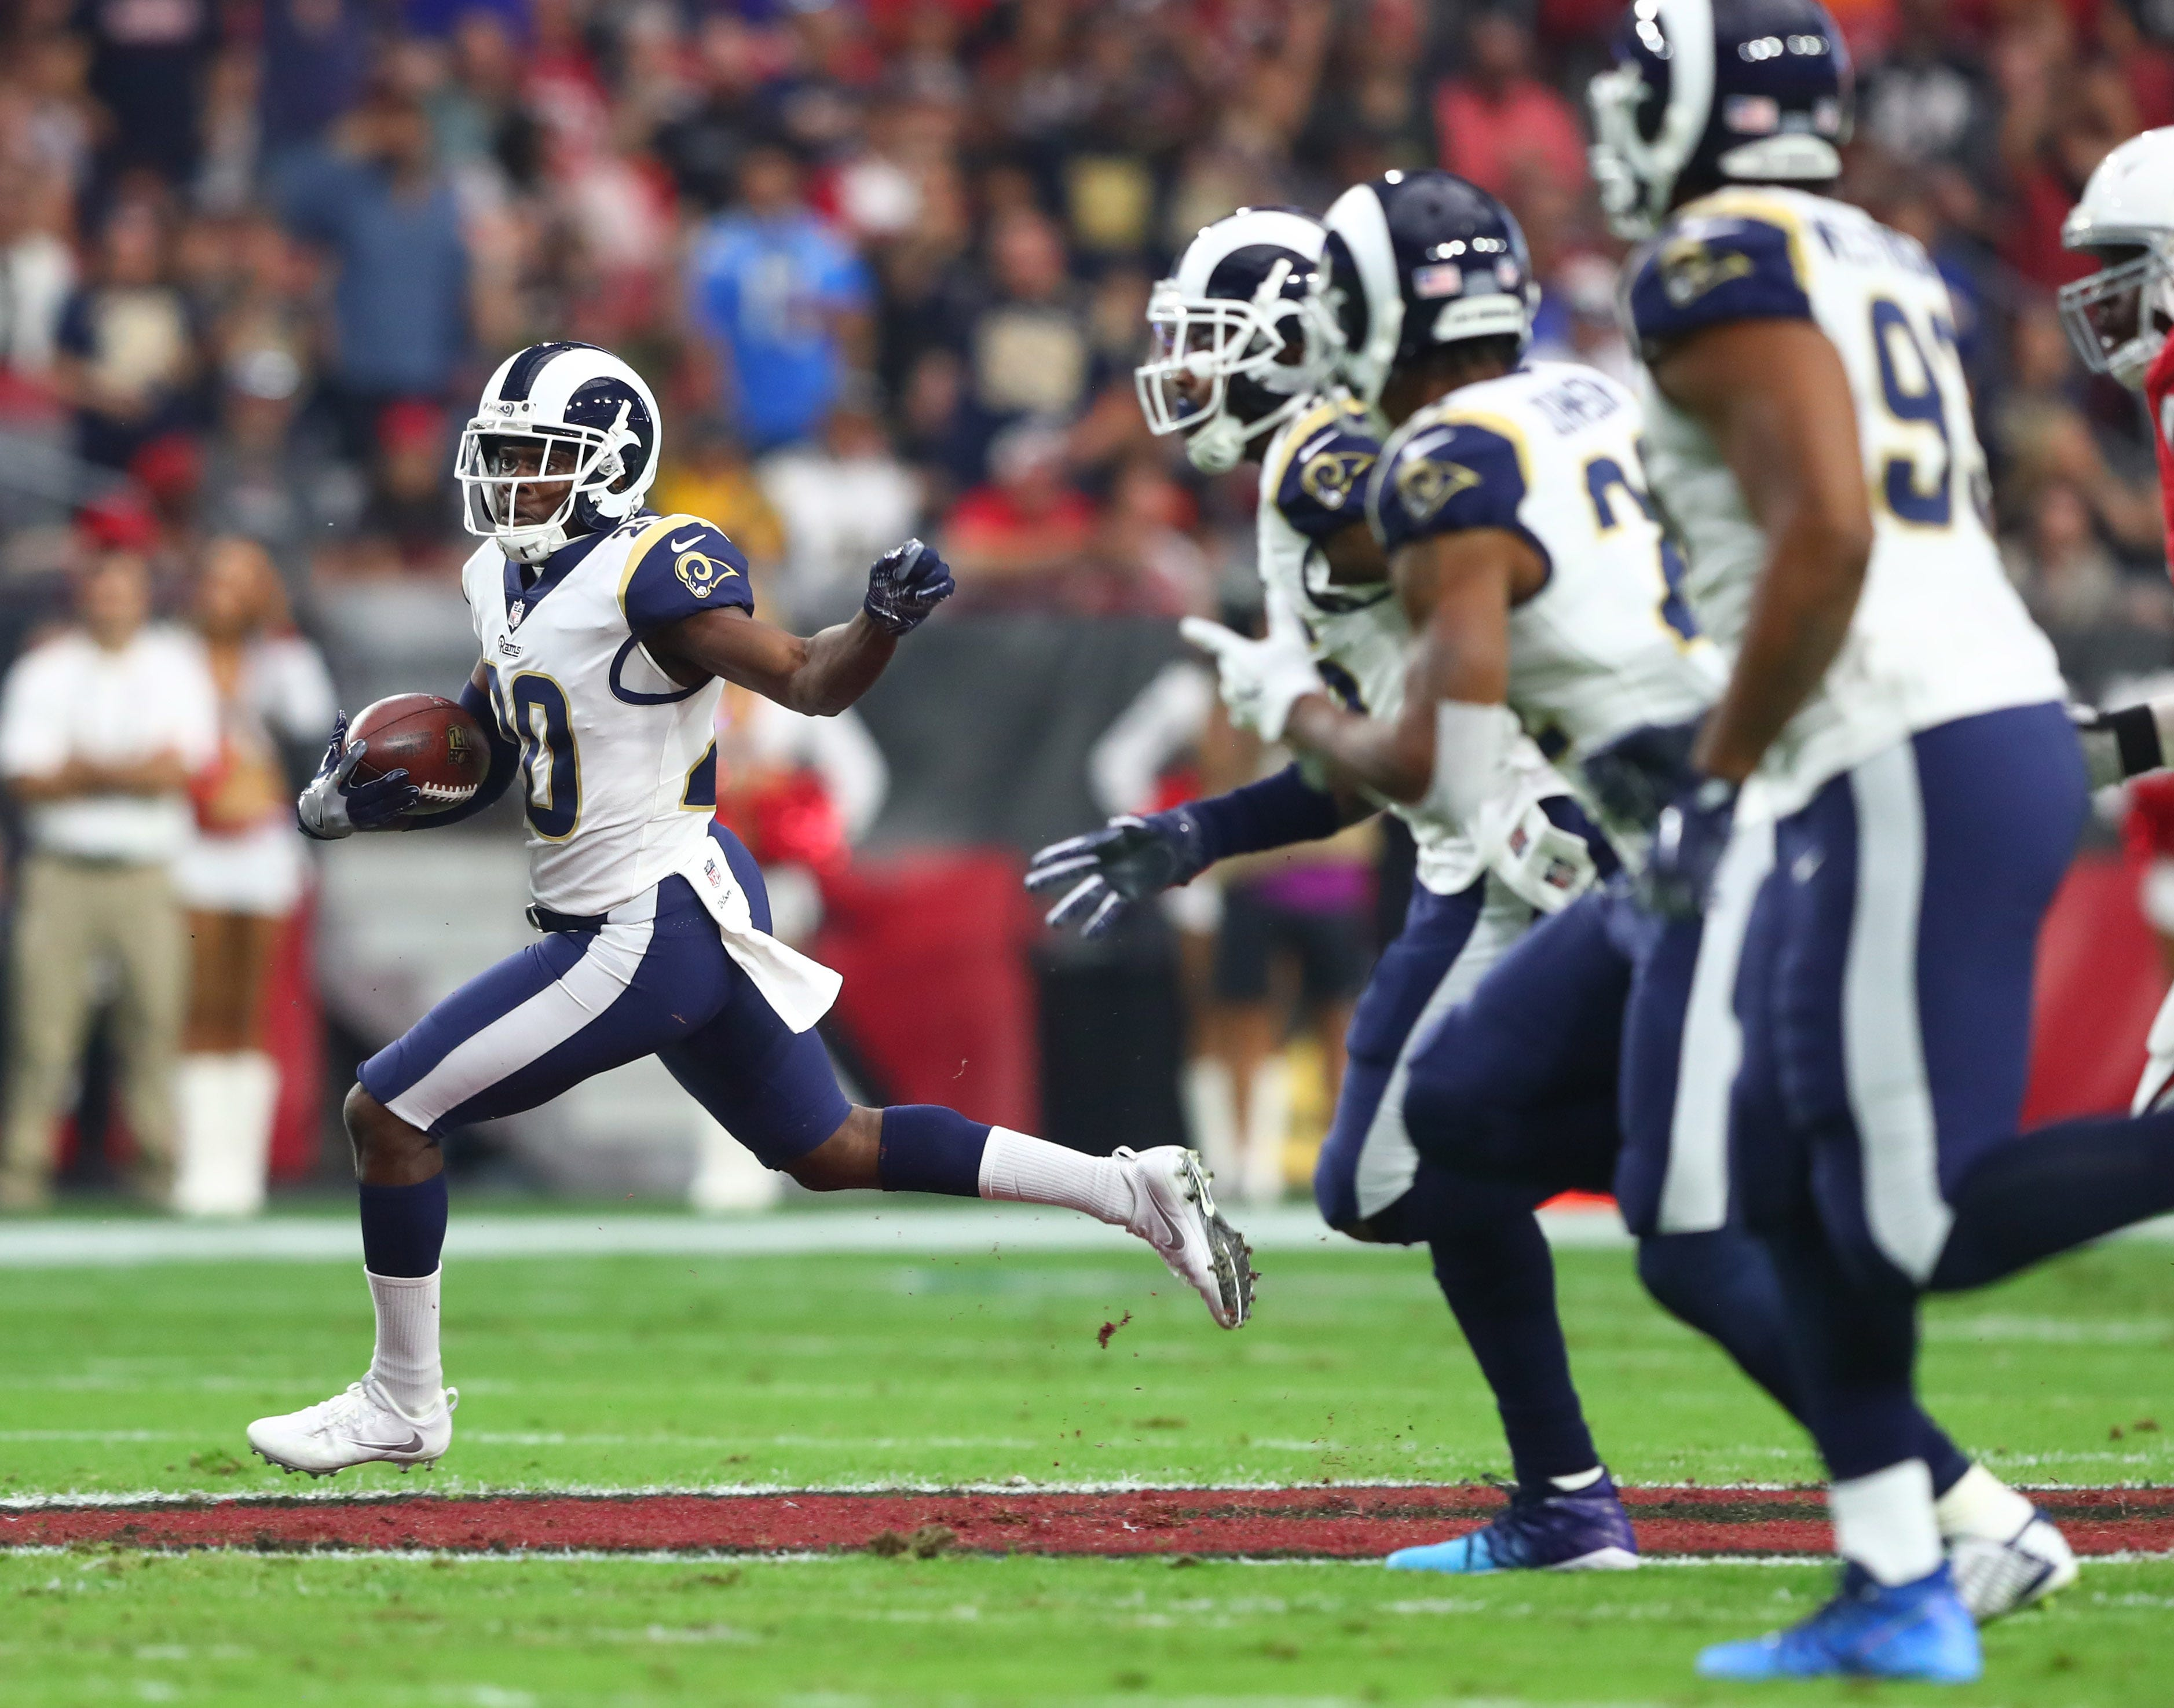 Los Angeles Rams safety Lamarcus Joyner returns a first